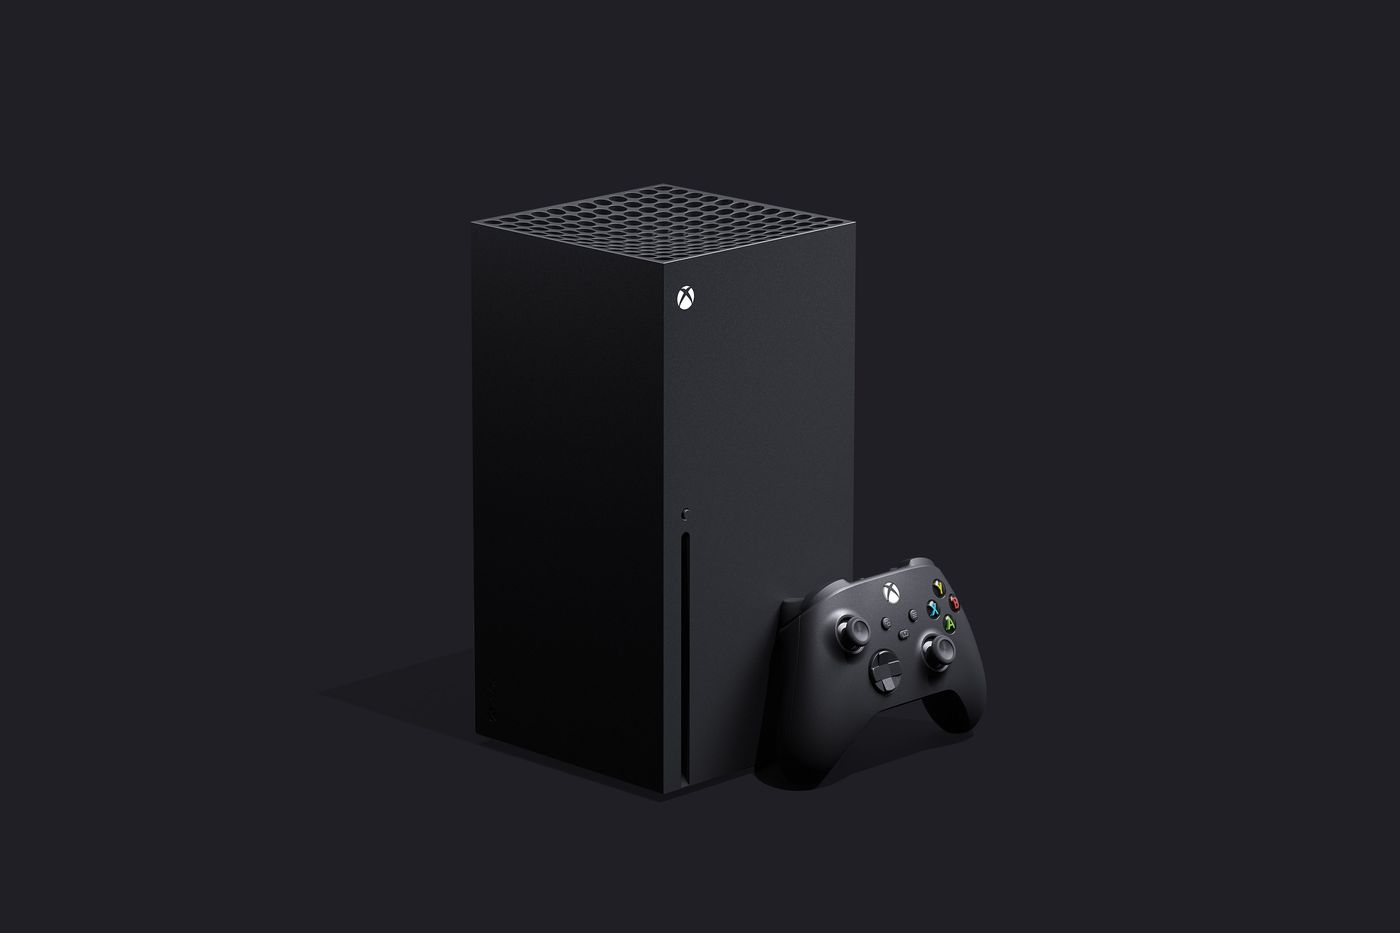 Yes You Can Use The New Xbox Series X Horizontally The Verge